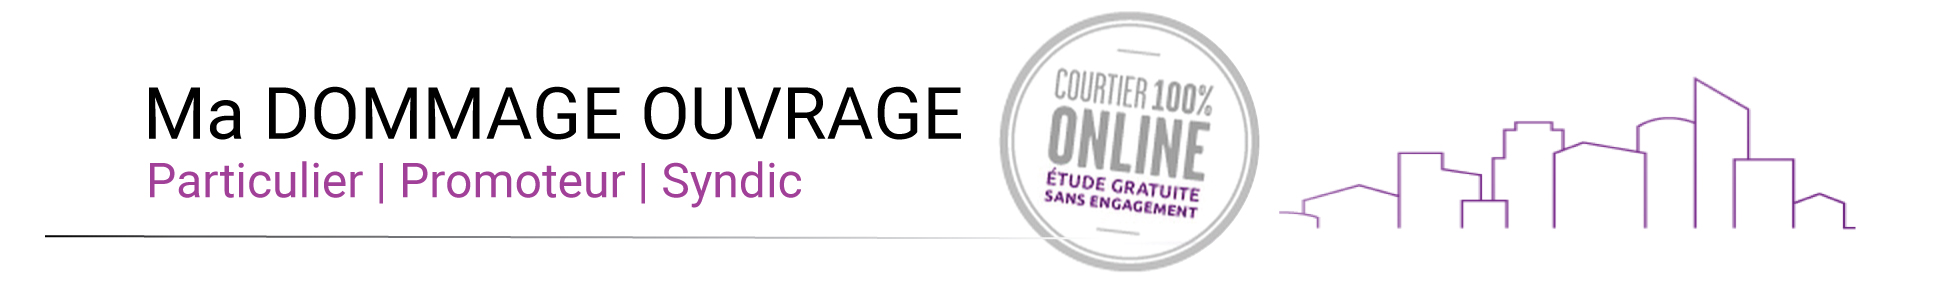 COUT ASSURANCE DOMMAGE OUVRAGE